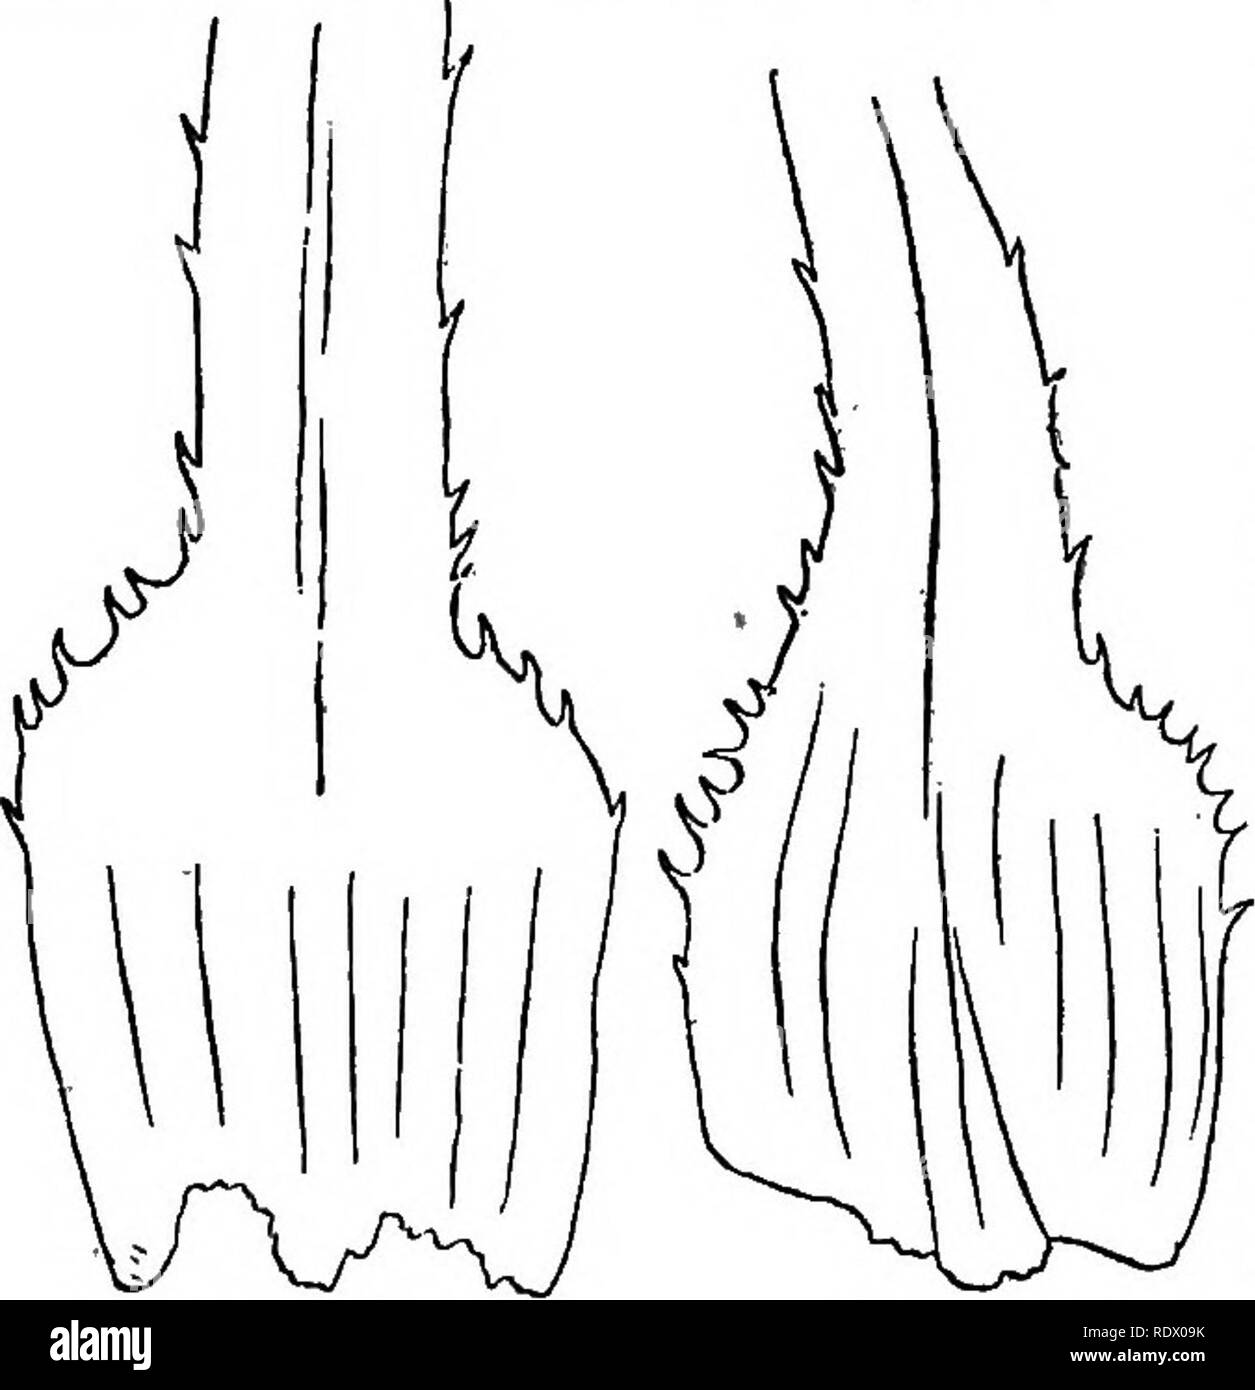 """. """"On the structure, the occurrence in Lancashire, and the source of origin of Naias graminea, Del., var. Delilei, Magnus."""". Botany. Fia. 55. pair of leaves of each fascicle, and the sheaths of the pair embrace the leaf; most often these are the only leaves in the fascicle which possess auricles (see Delile's figure on Plate 250, fig. 4). The next pair of leaves has auricles which, when present, form a more acute sinus with the lamina (fig. 55); but as we approach the centre of each fascicle the leaves are destitute of auricles, and pass into short lanceolate bracts, in the midst of  - Stock Image"""